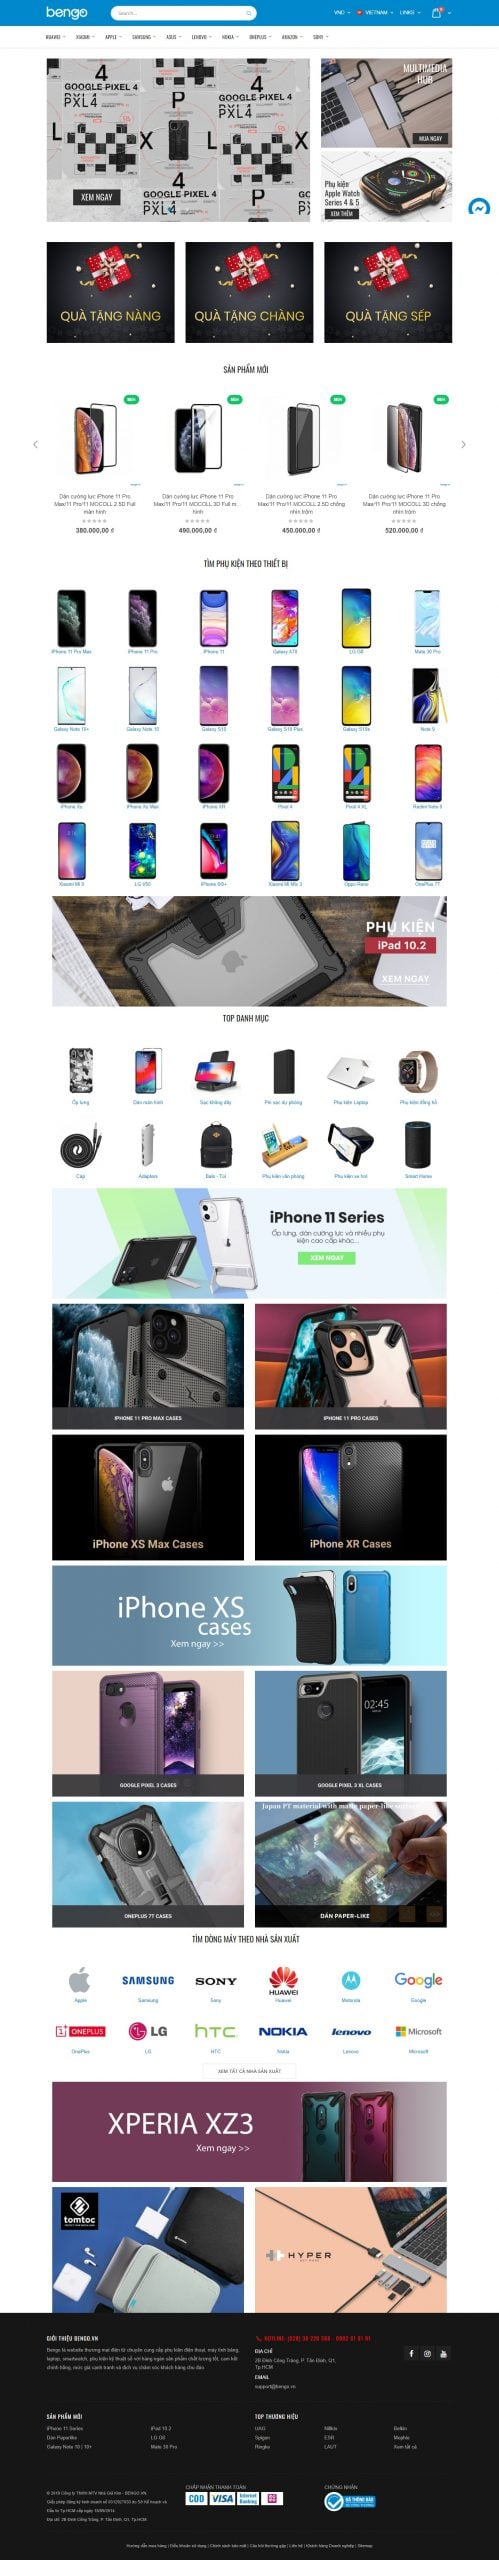 Mẫu thiết kế website bán hàng Smart Accessories, tech and gadgets – Bengo.vn